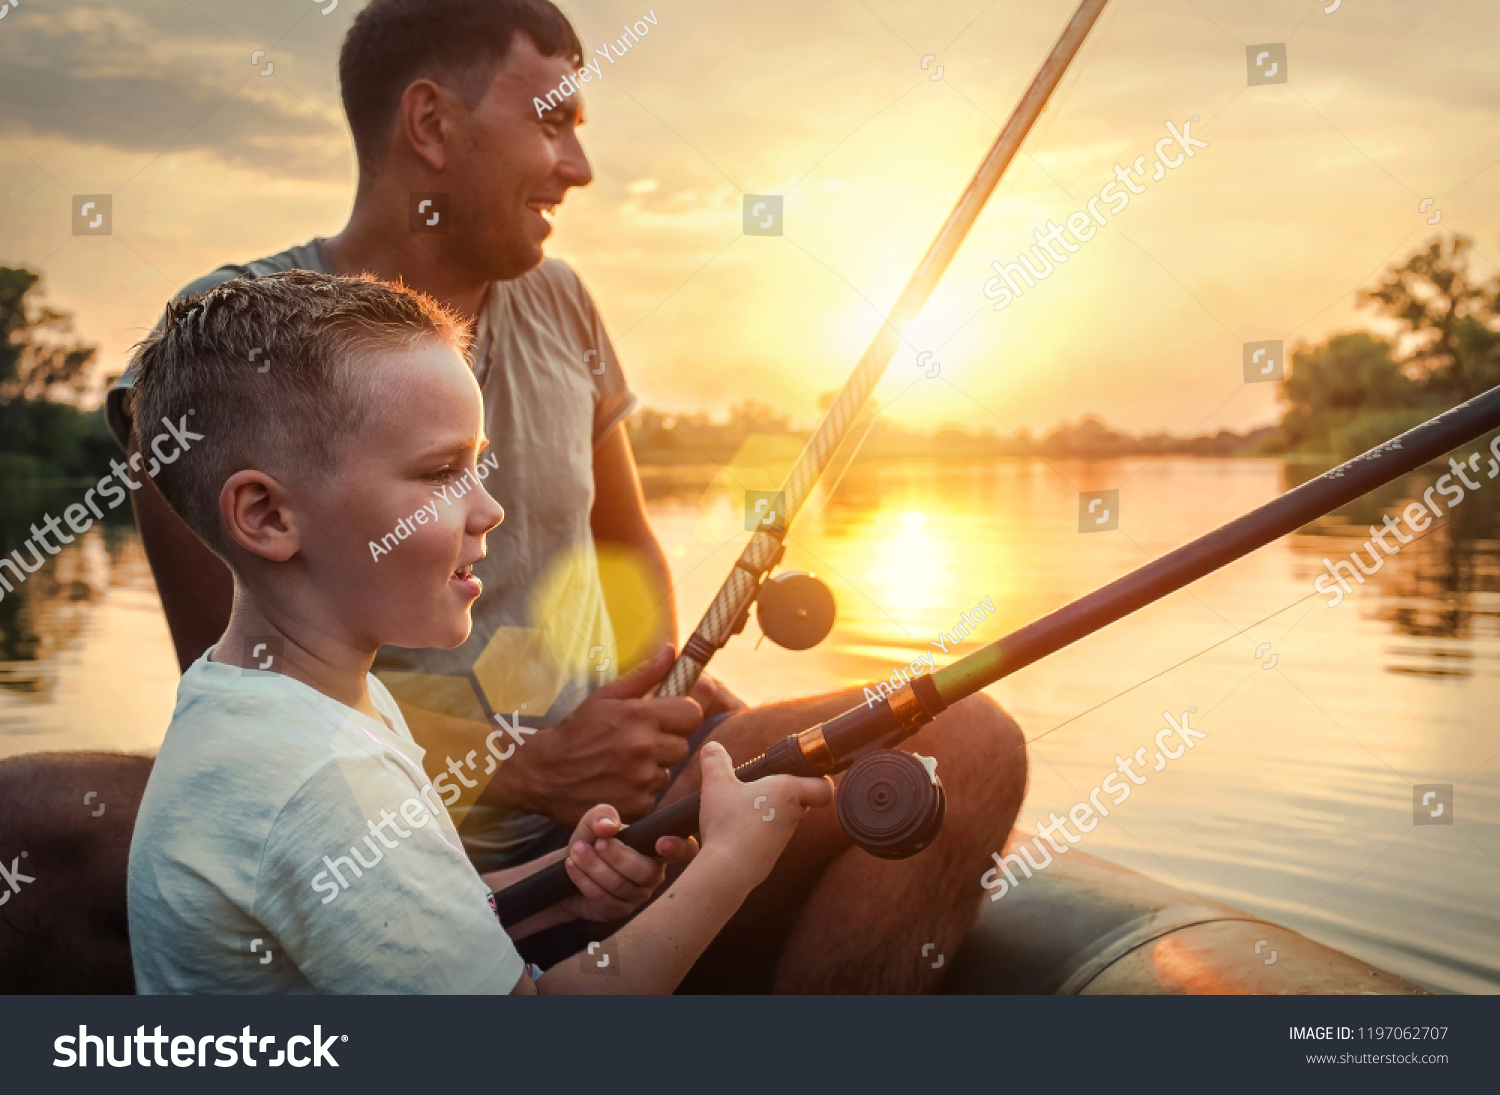 Happy Father and Son together fishing from a boat at sunset time in summer day under beautiful sky on the lake. #1197062707